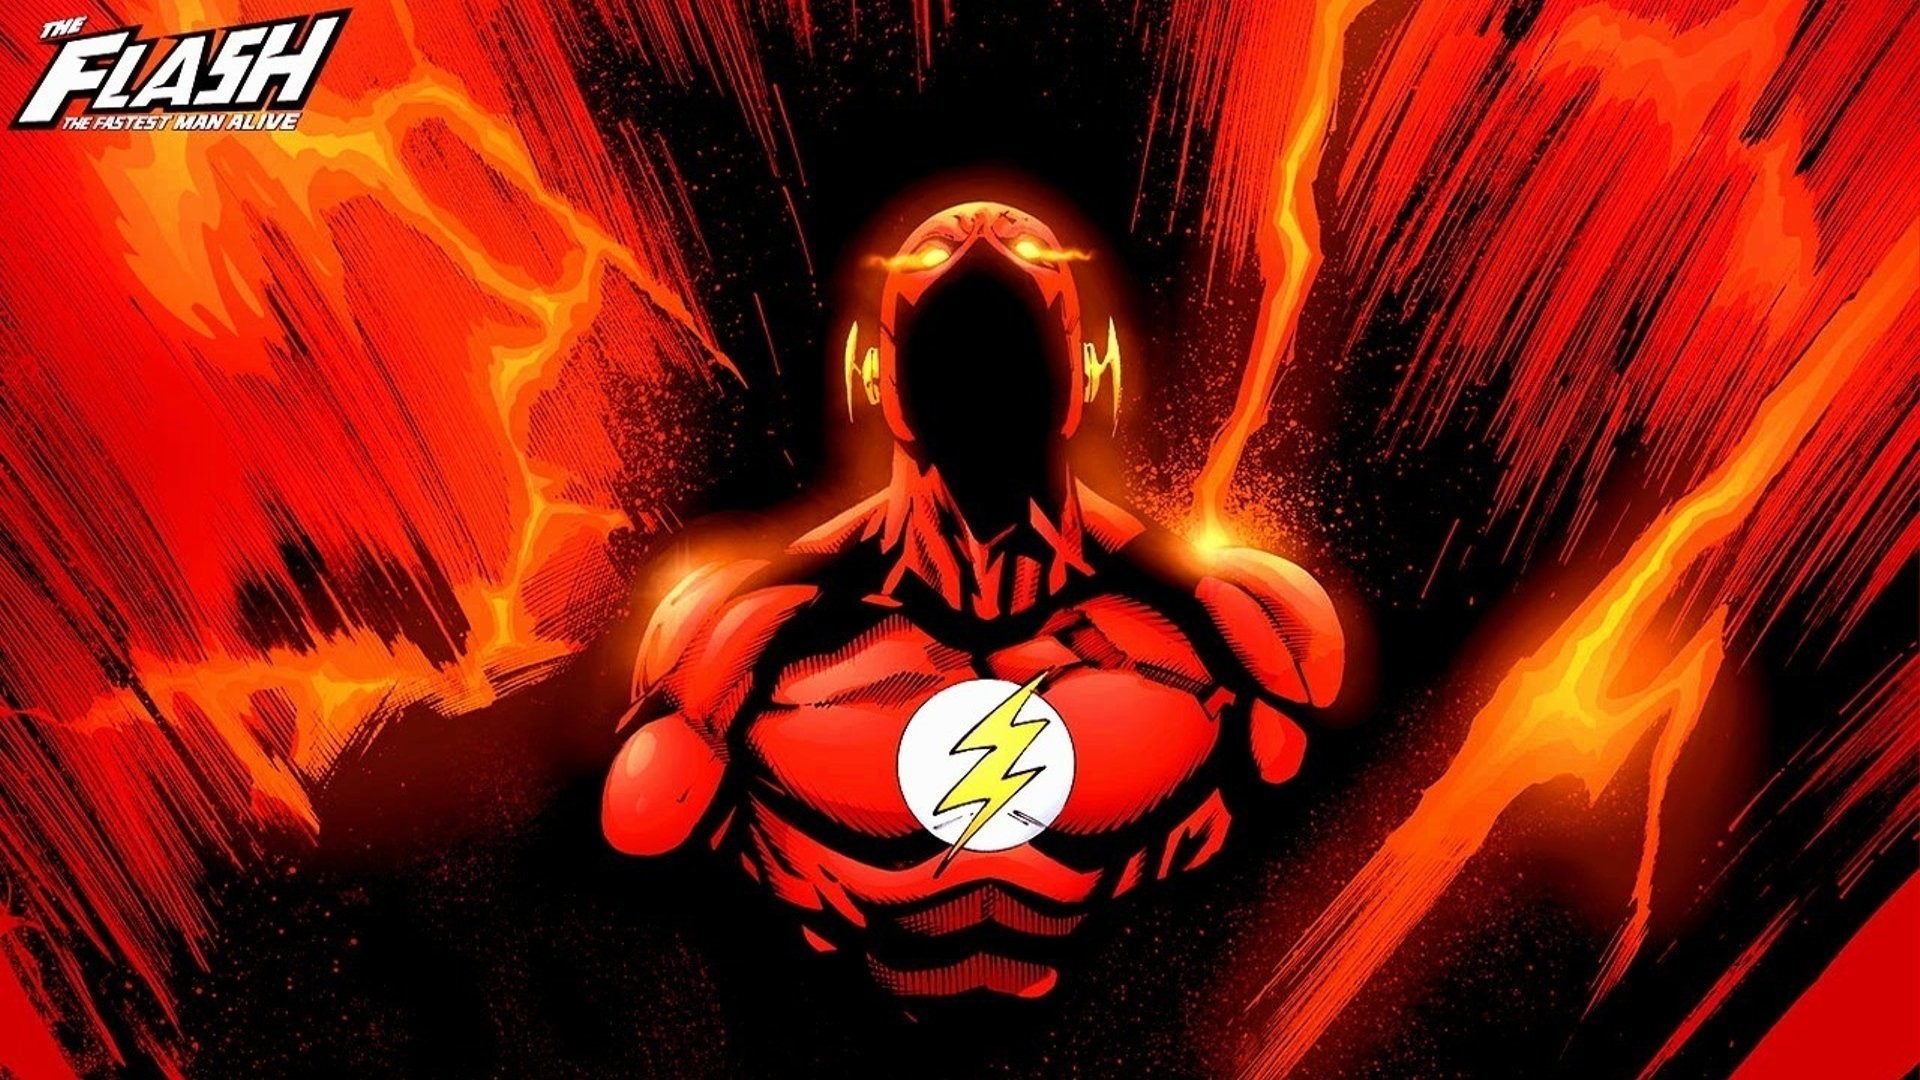 Barry Allen the Flash wallpapers HD free Download | HD Wallpapers |  Pinterest | Flash wallpaper, Hd wallpaper and Wallpaper